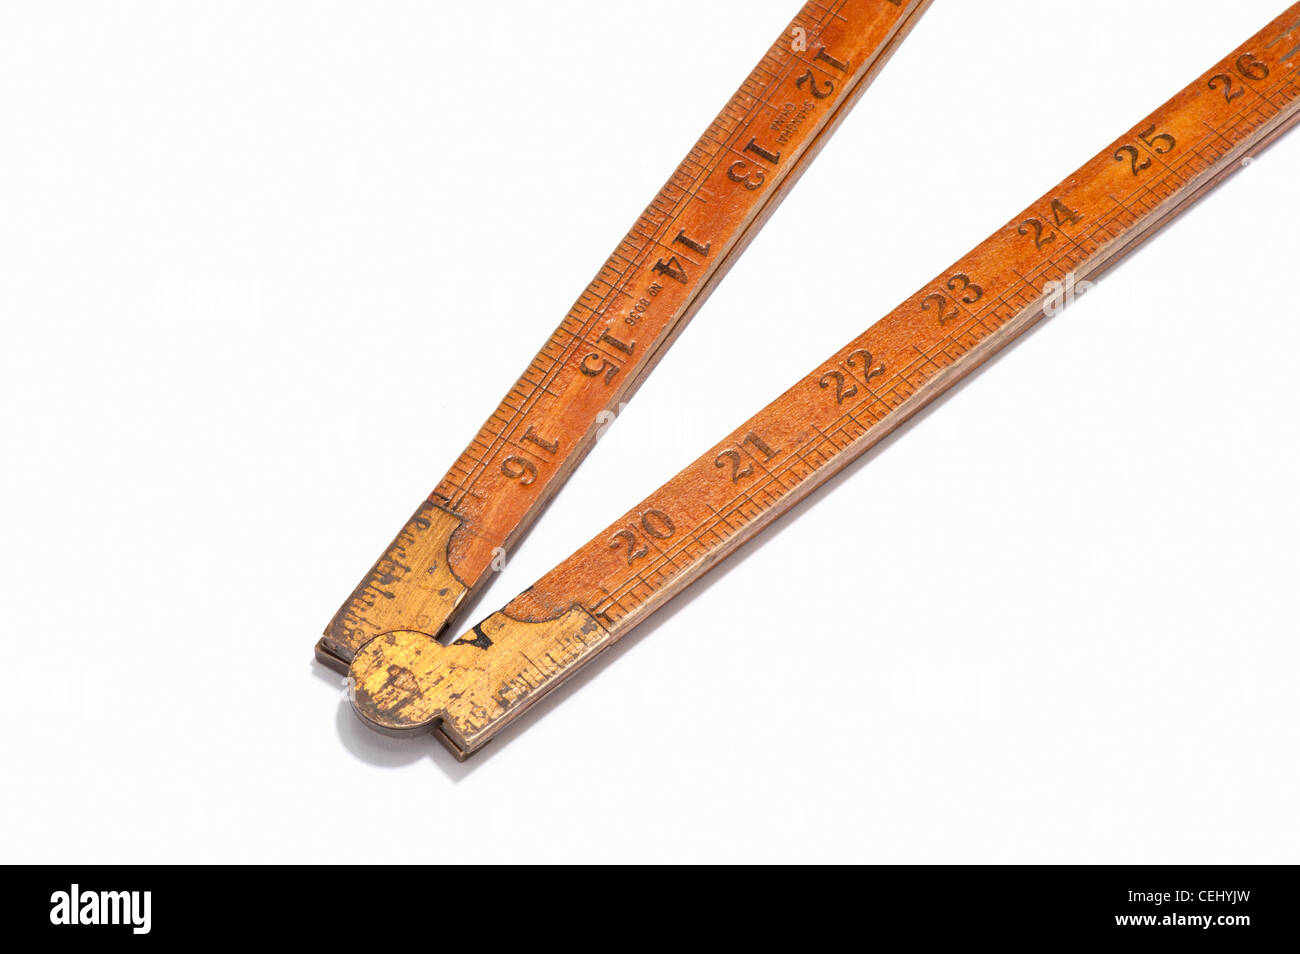 A wooden ruler - Stock Image